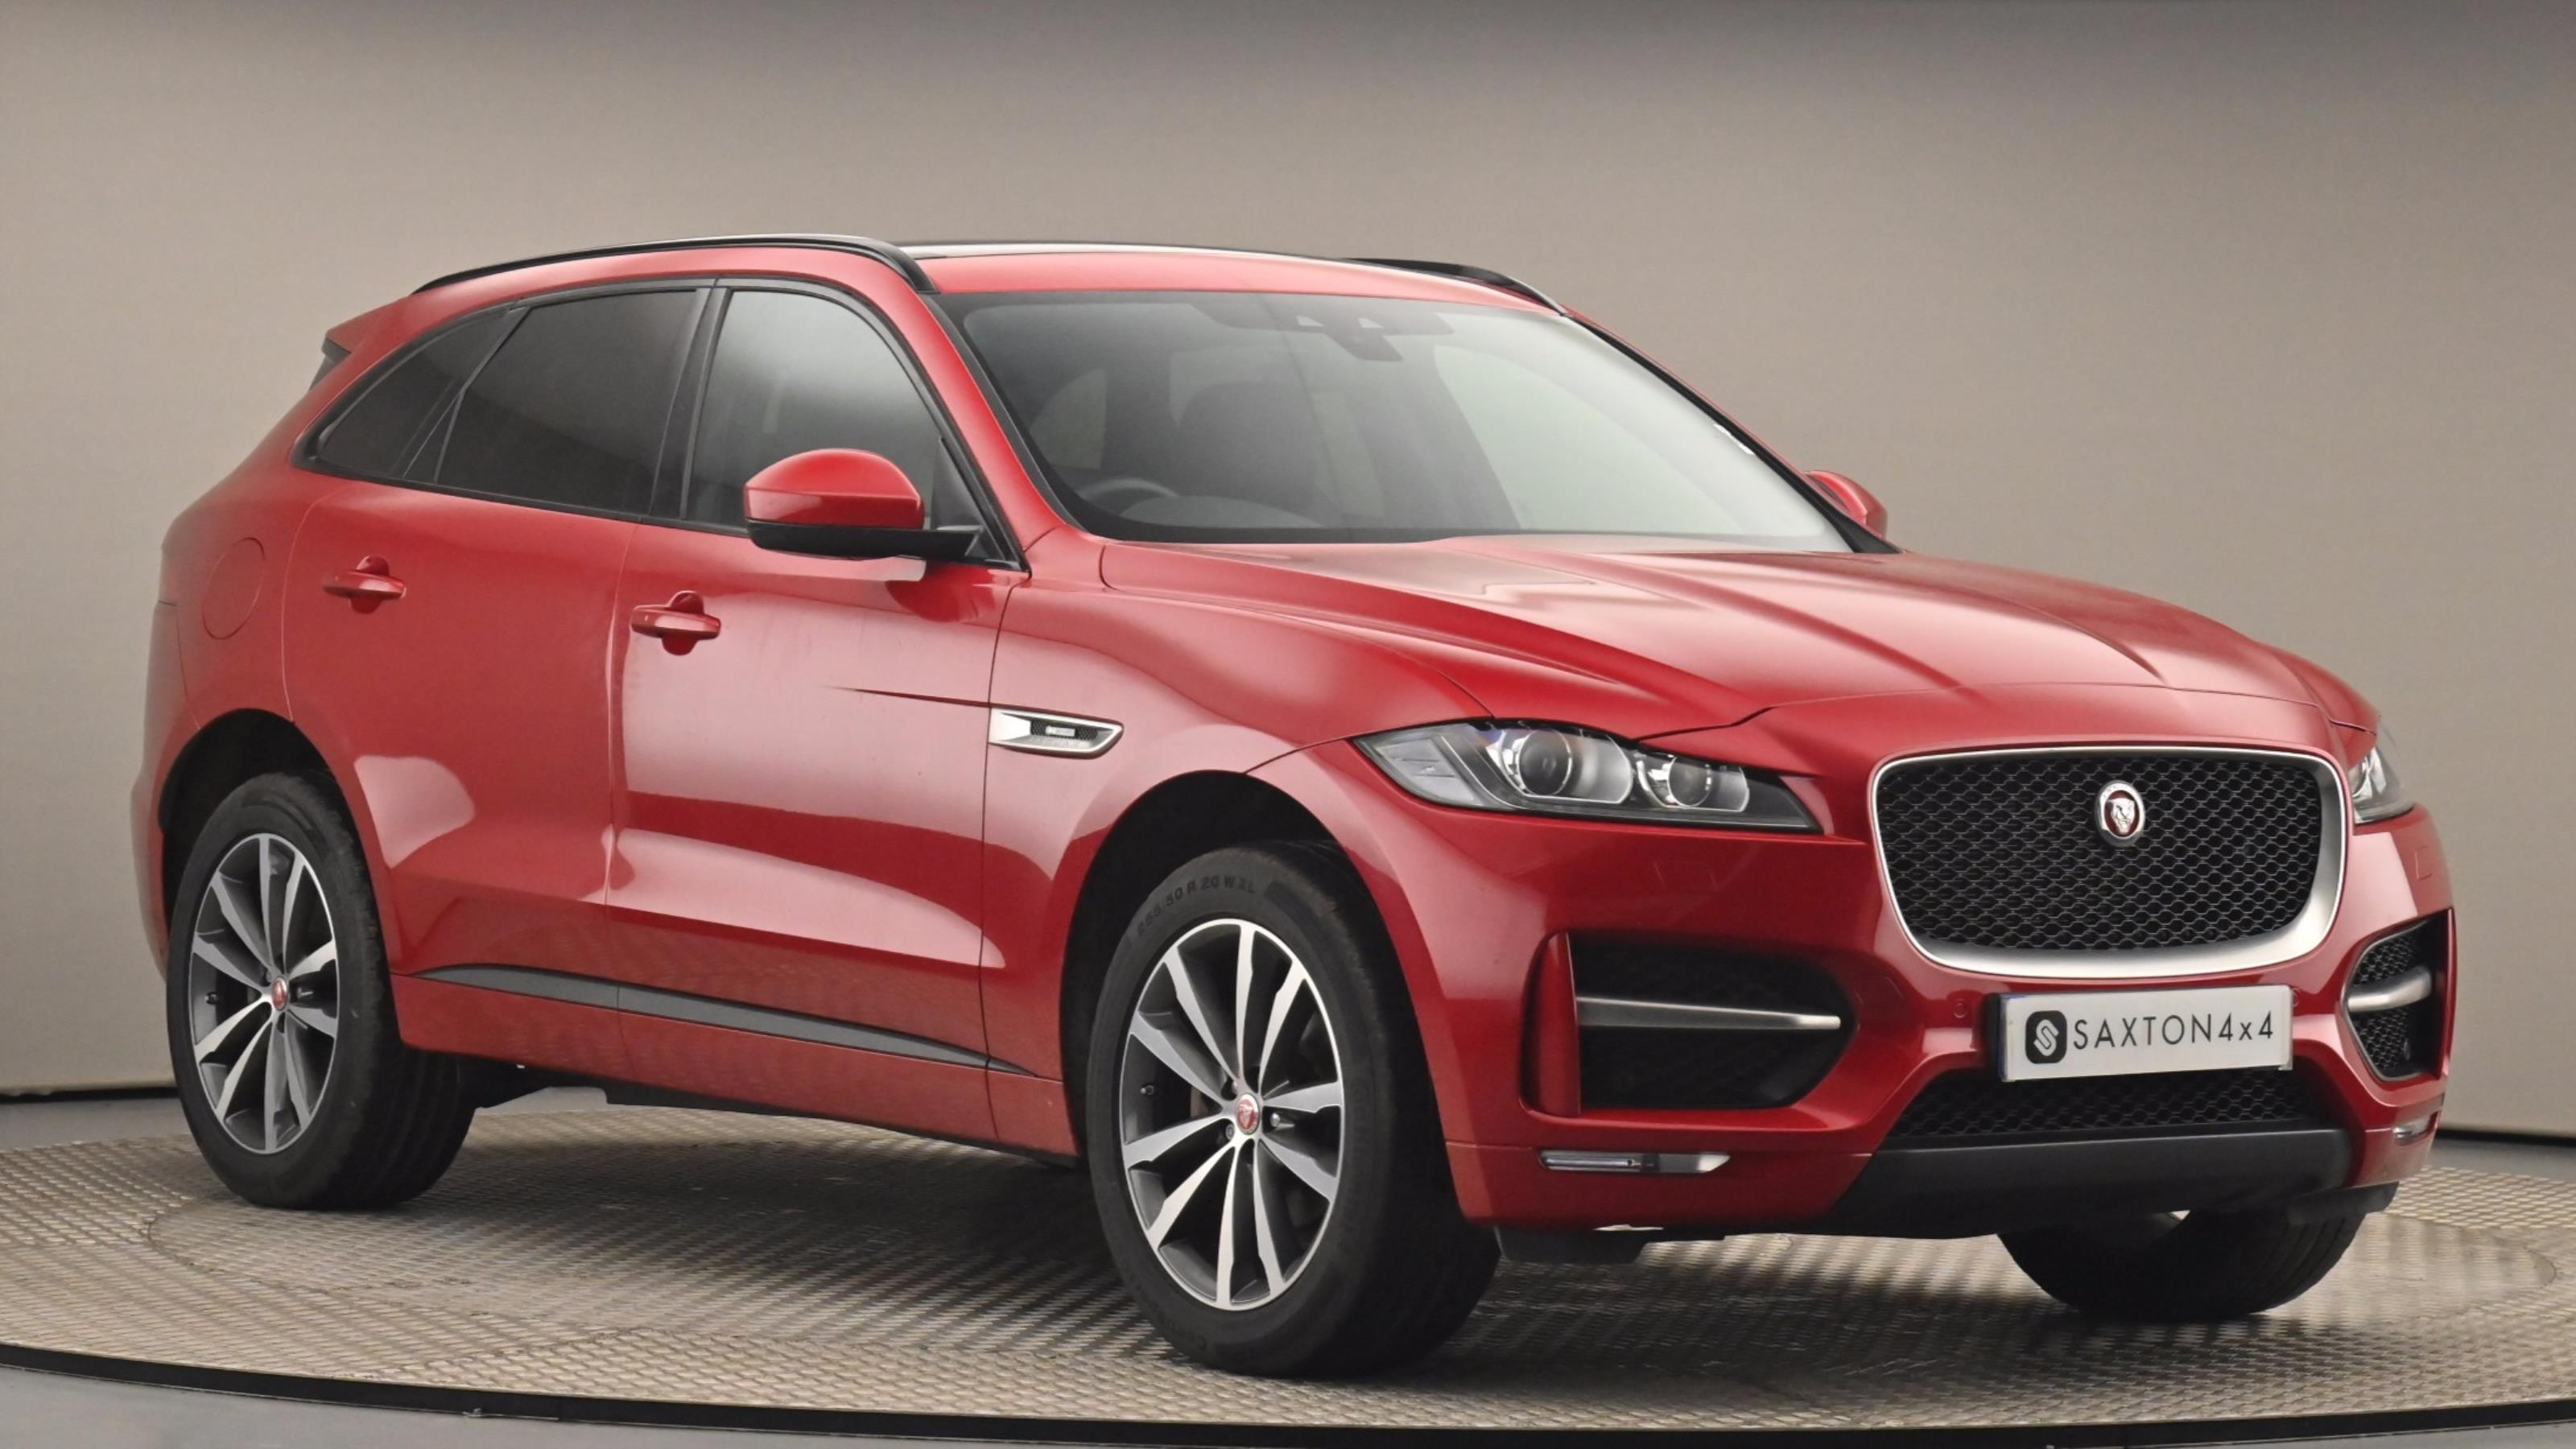 Used 2018 Jaguar F-PACE 2.0d [240] R-Sport 5dr Auto AWD RED at Saxton4x4